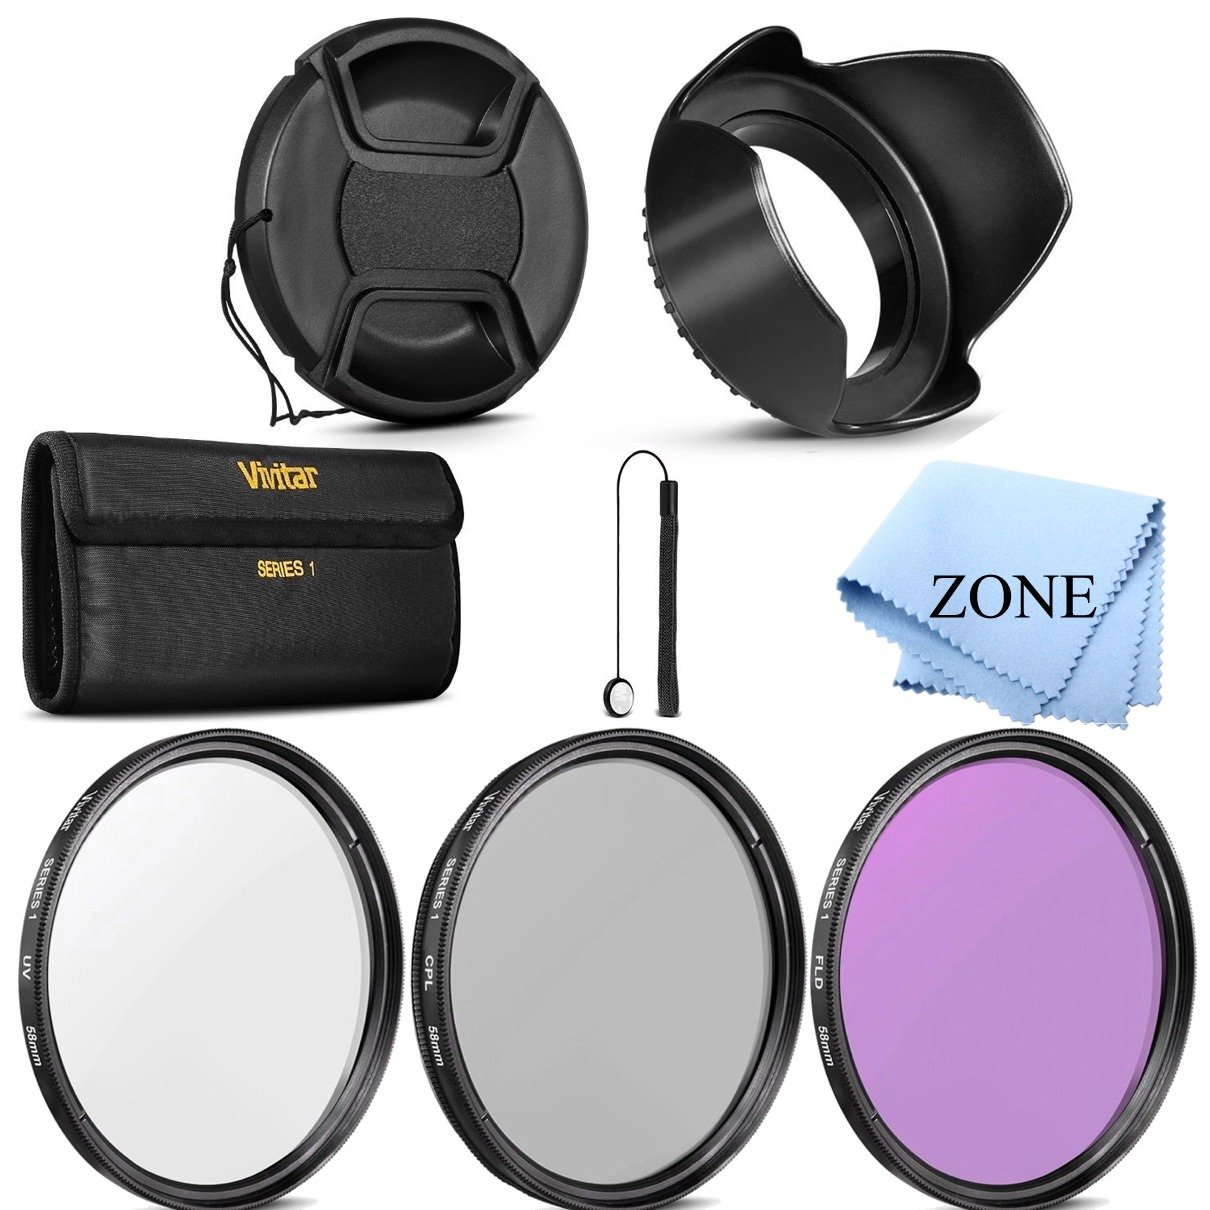 58mm Professional Lens Filter Accessory Kit Filter Kit (UV, CPL, FLD) + Carry Pouch + Tulip Lens Hood + Snap-On Lens Cap w/Cap Keeper Leash + Microfiber Lens Cleaning Cloth by Accessory Zone